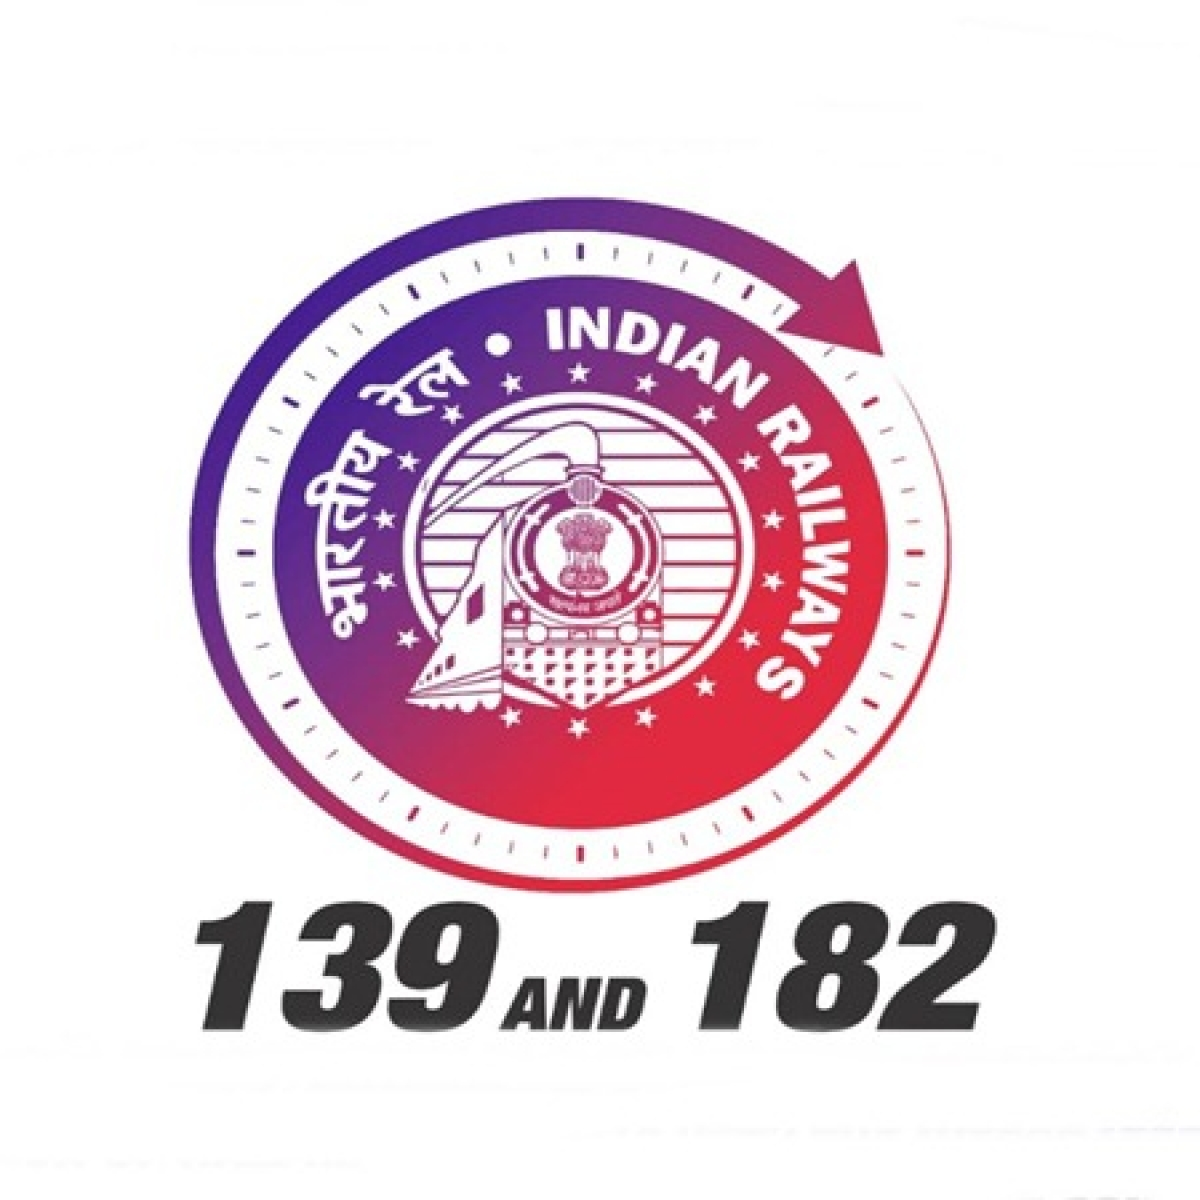 Indian Railways integrates its helpline numbers into a single number -- 139